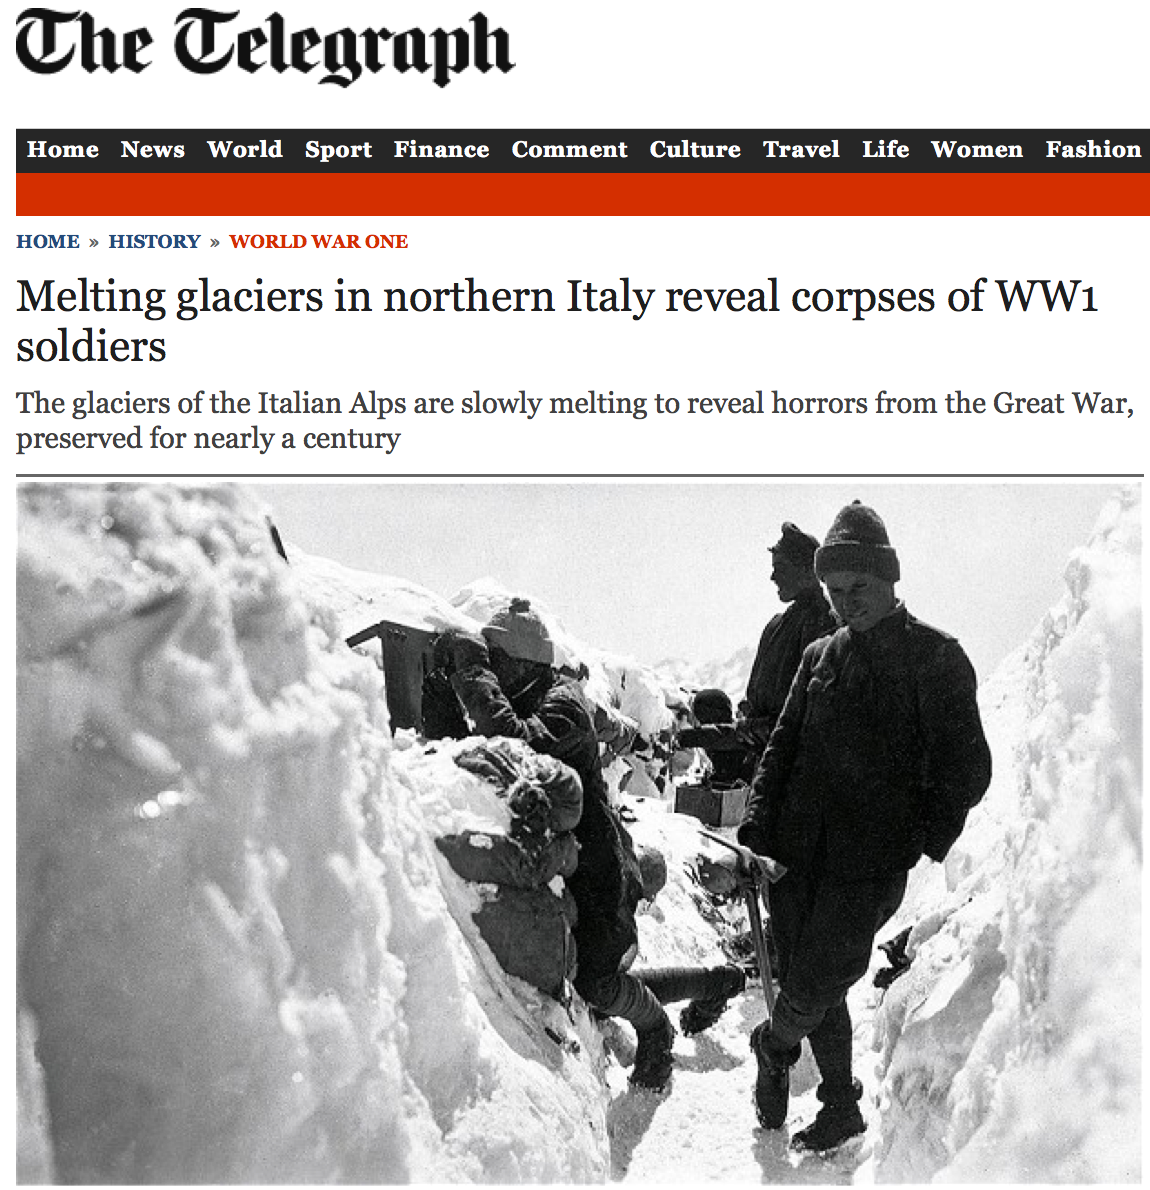 Olive Tree Genealogy Blog: Corpses of WW1 Soldiers Found as Glaciers Melt in Italy